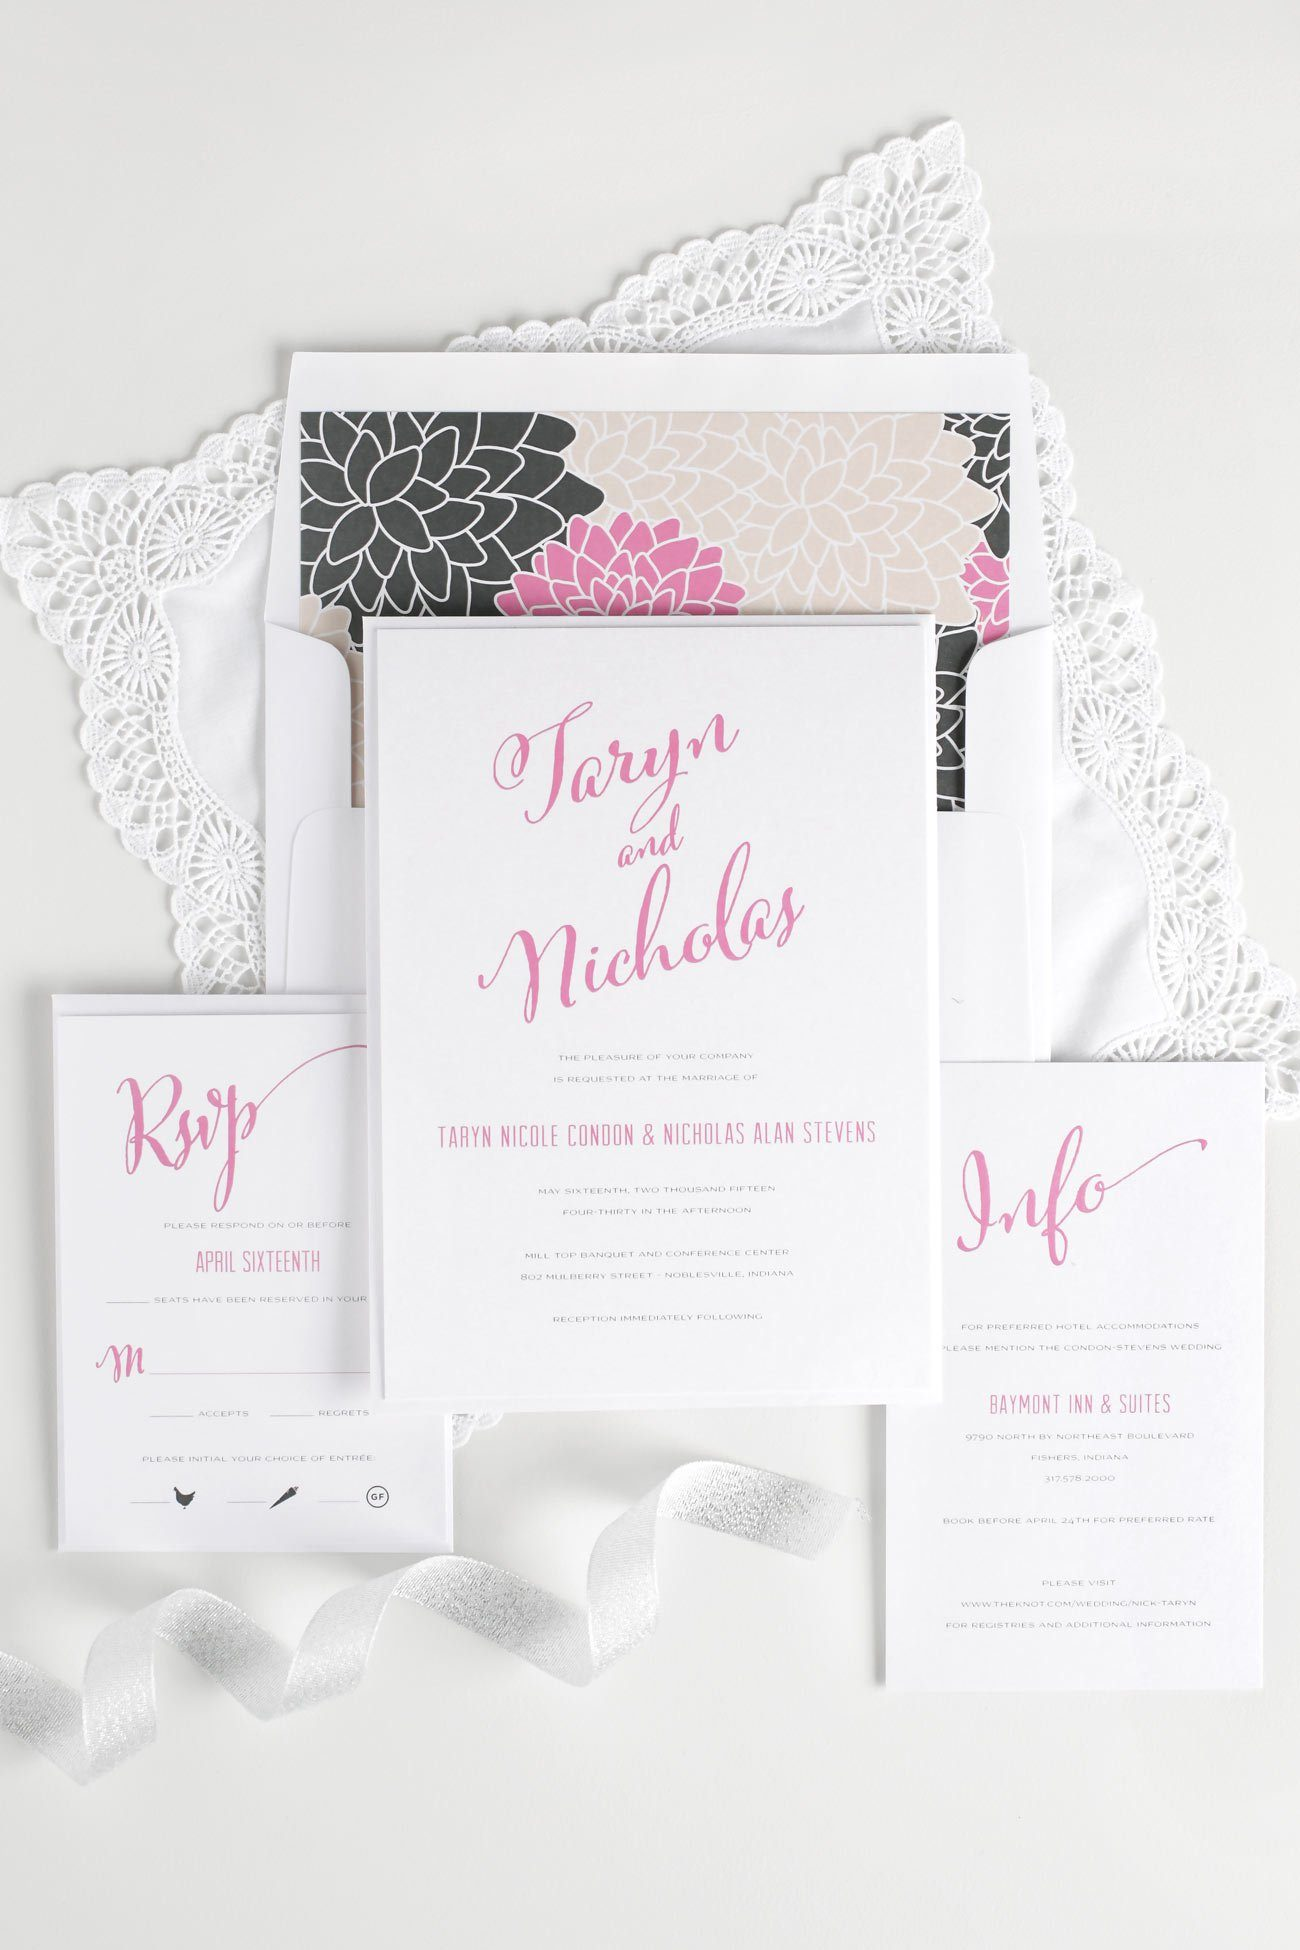 Modern Script wedding invitations in pink and gray